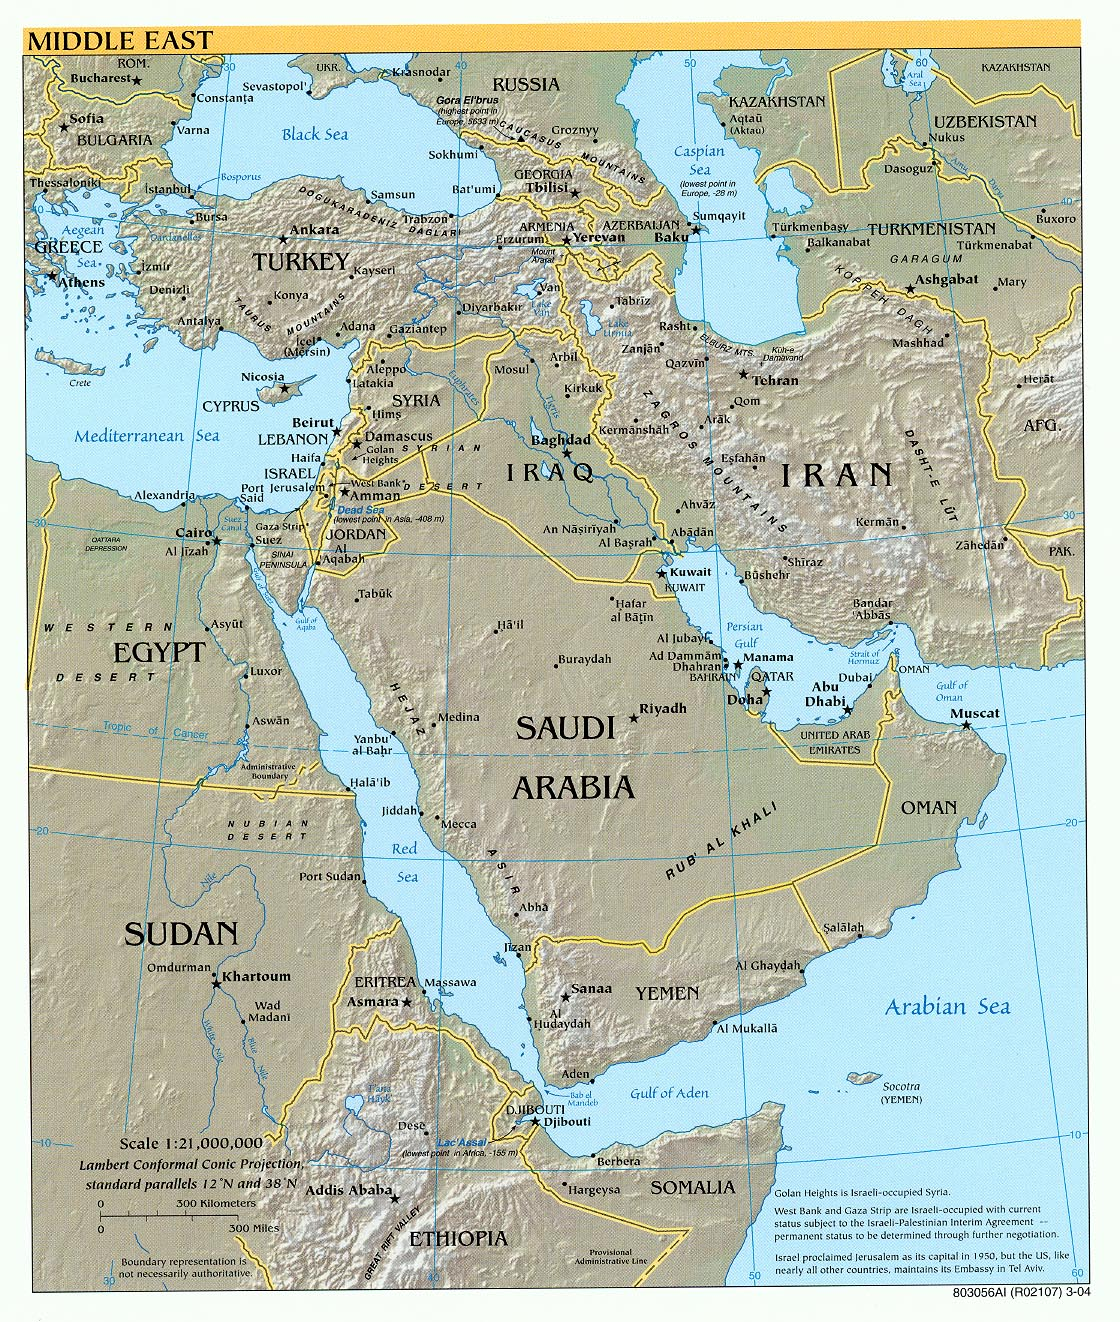 Middle East physical map 2004 Full size